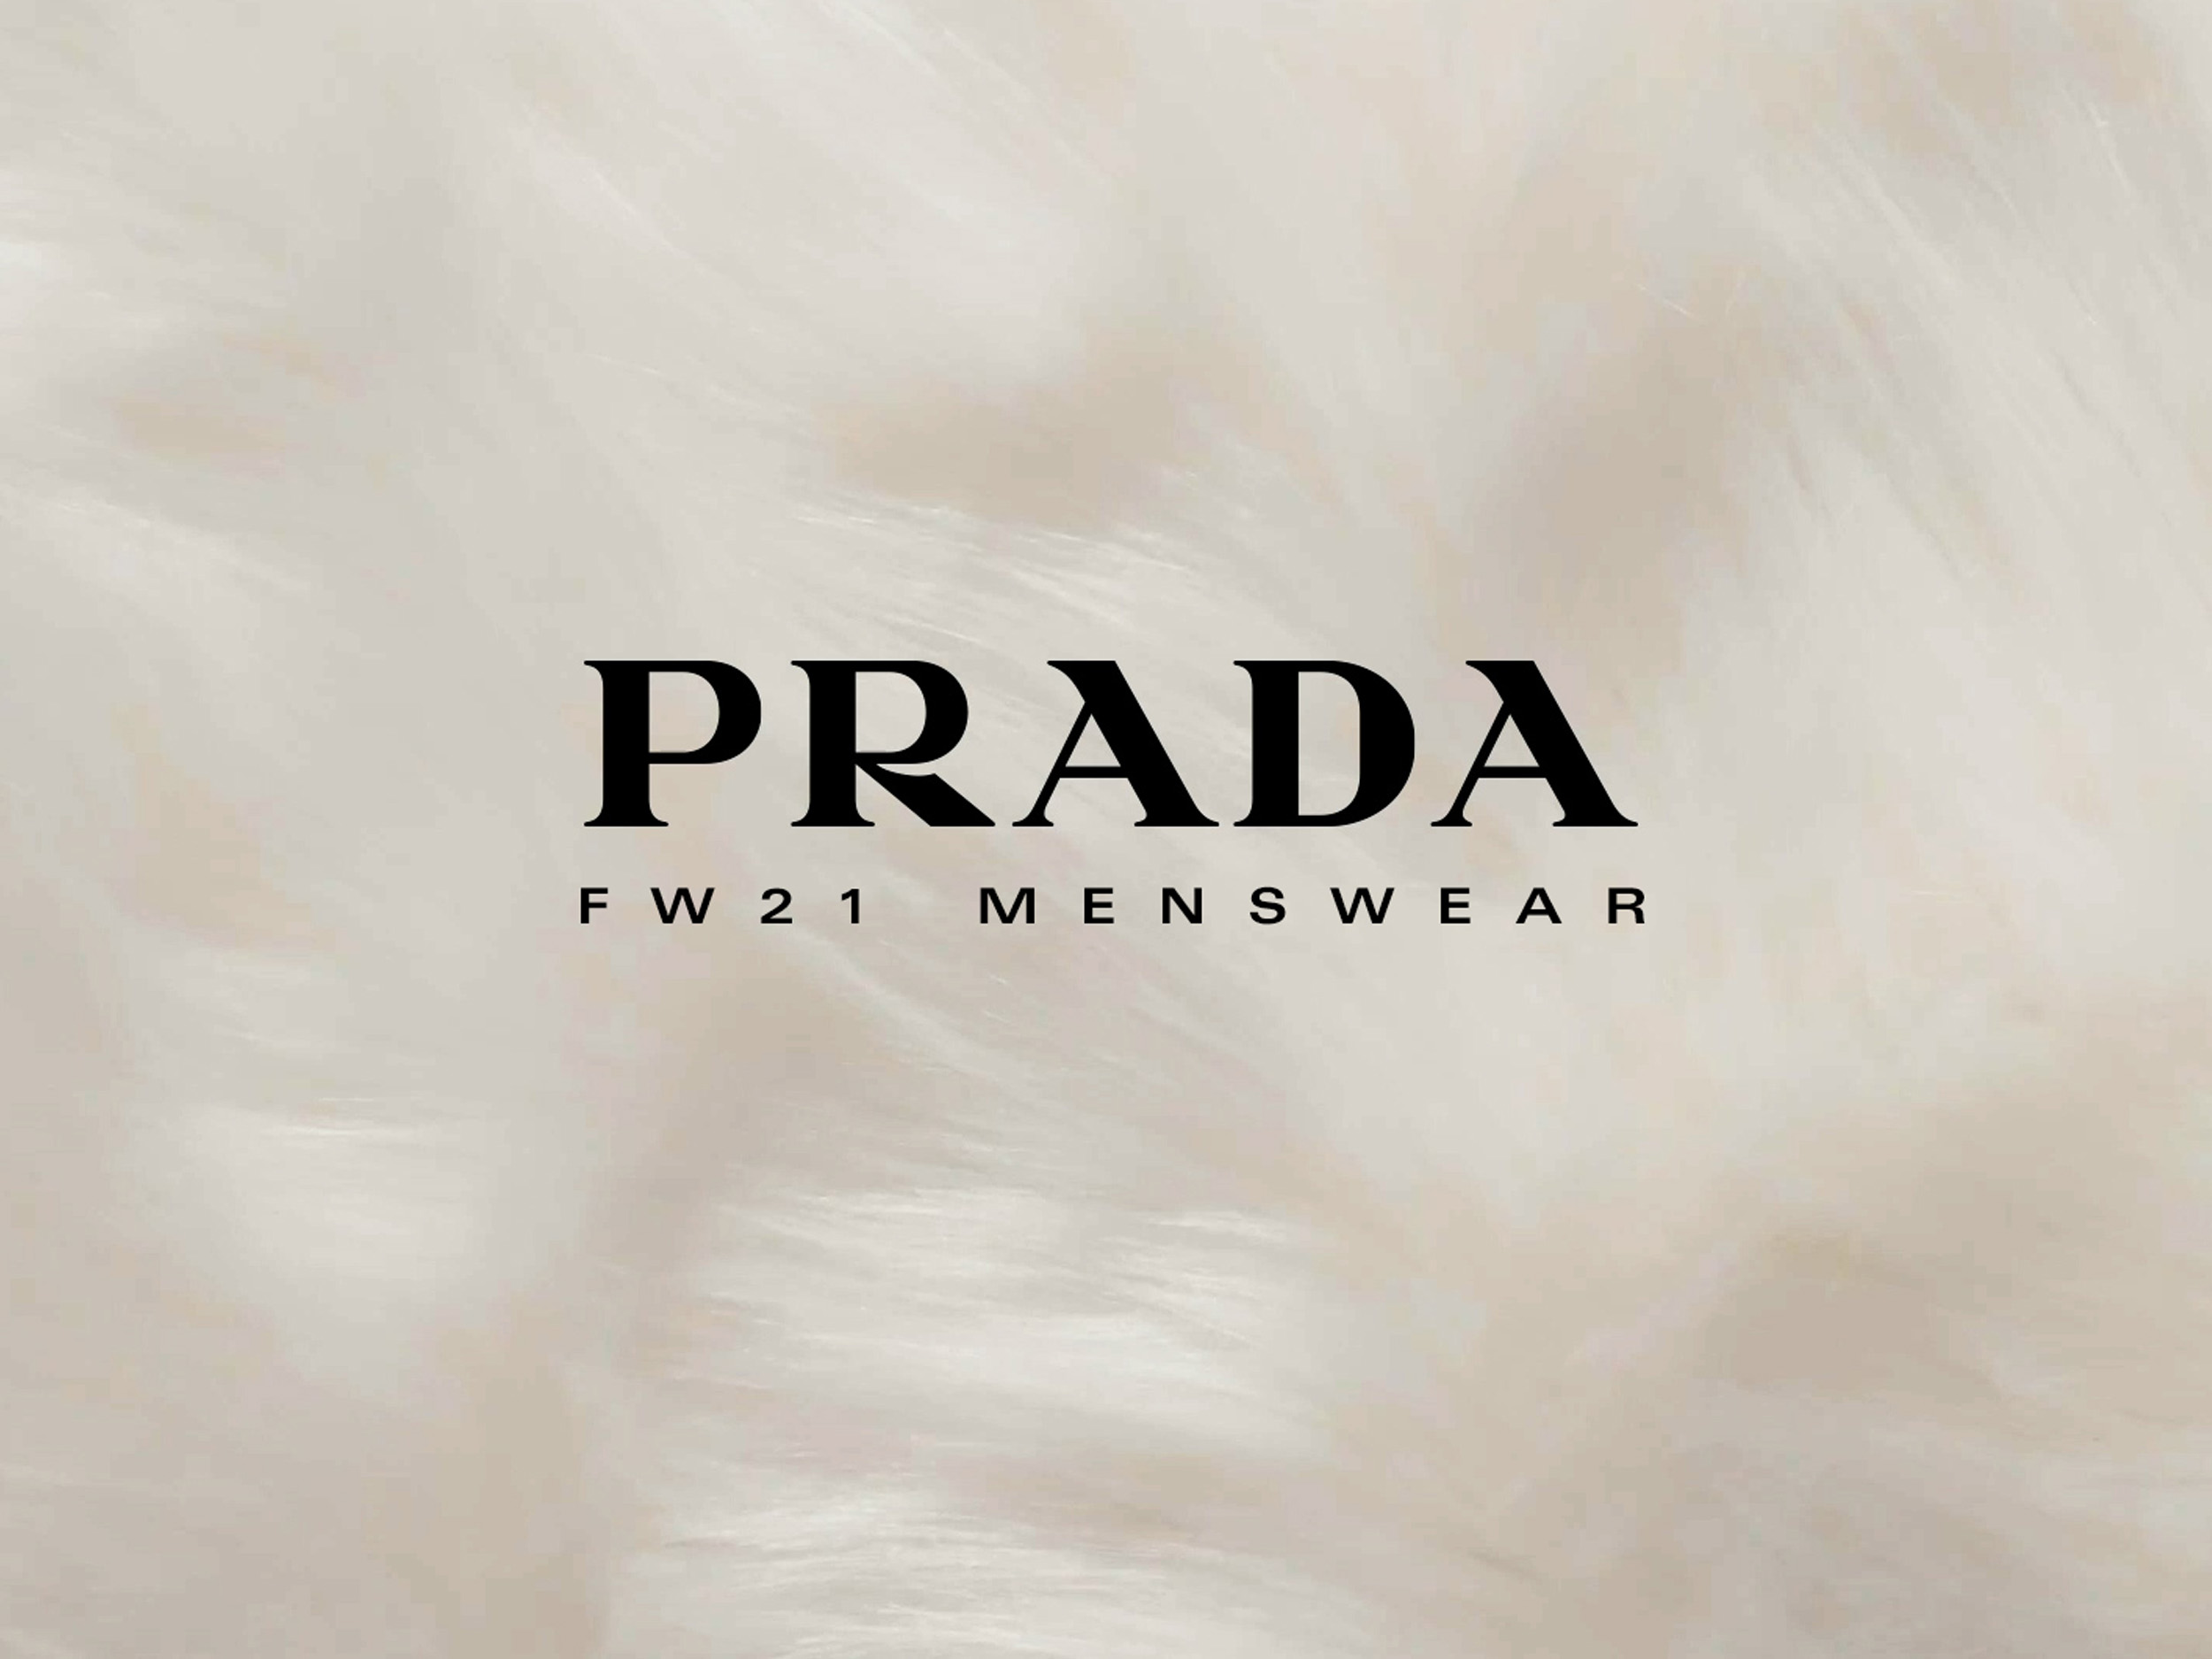 Livestream Prada Menswear Fall/Winter 2021 collection here